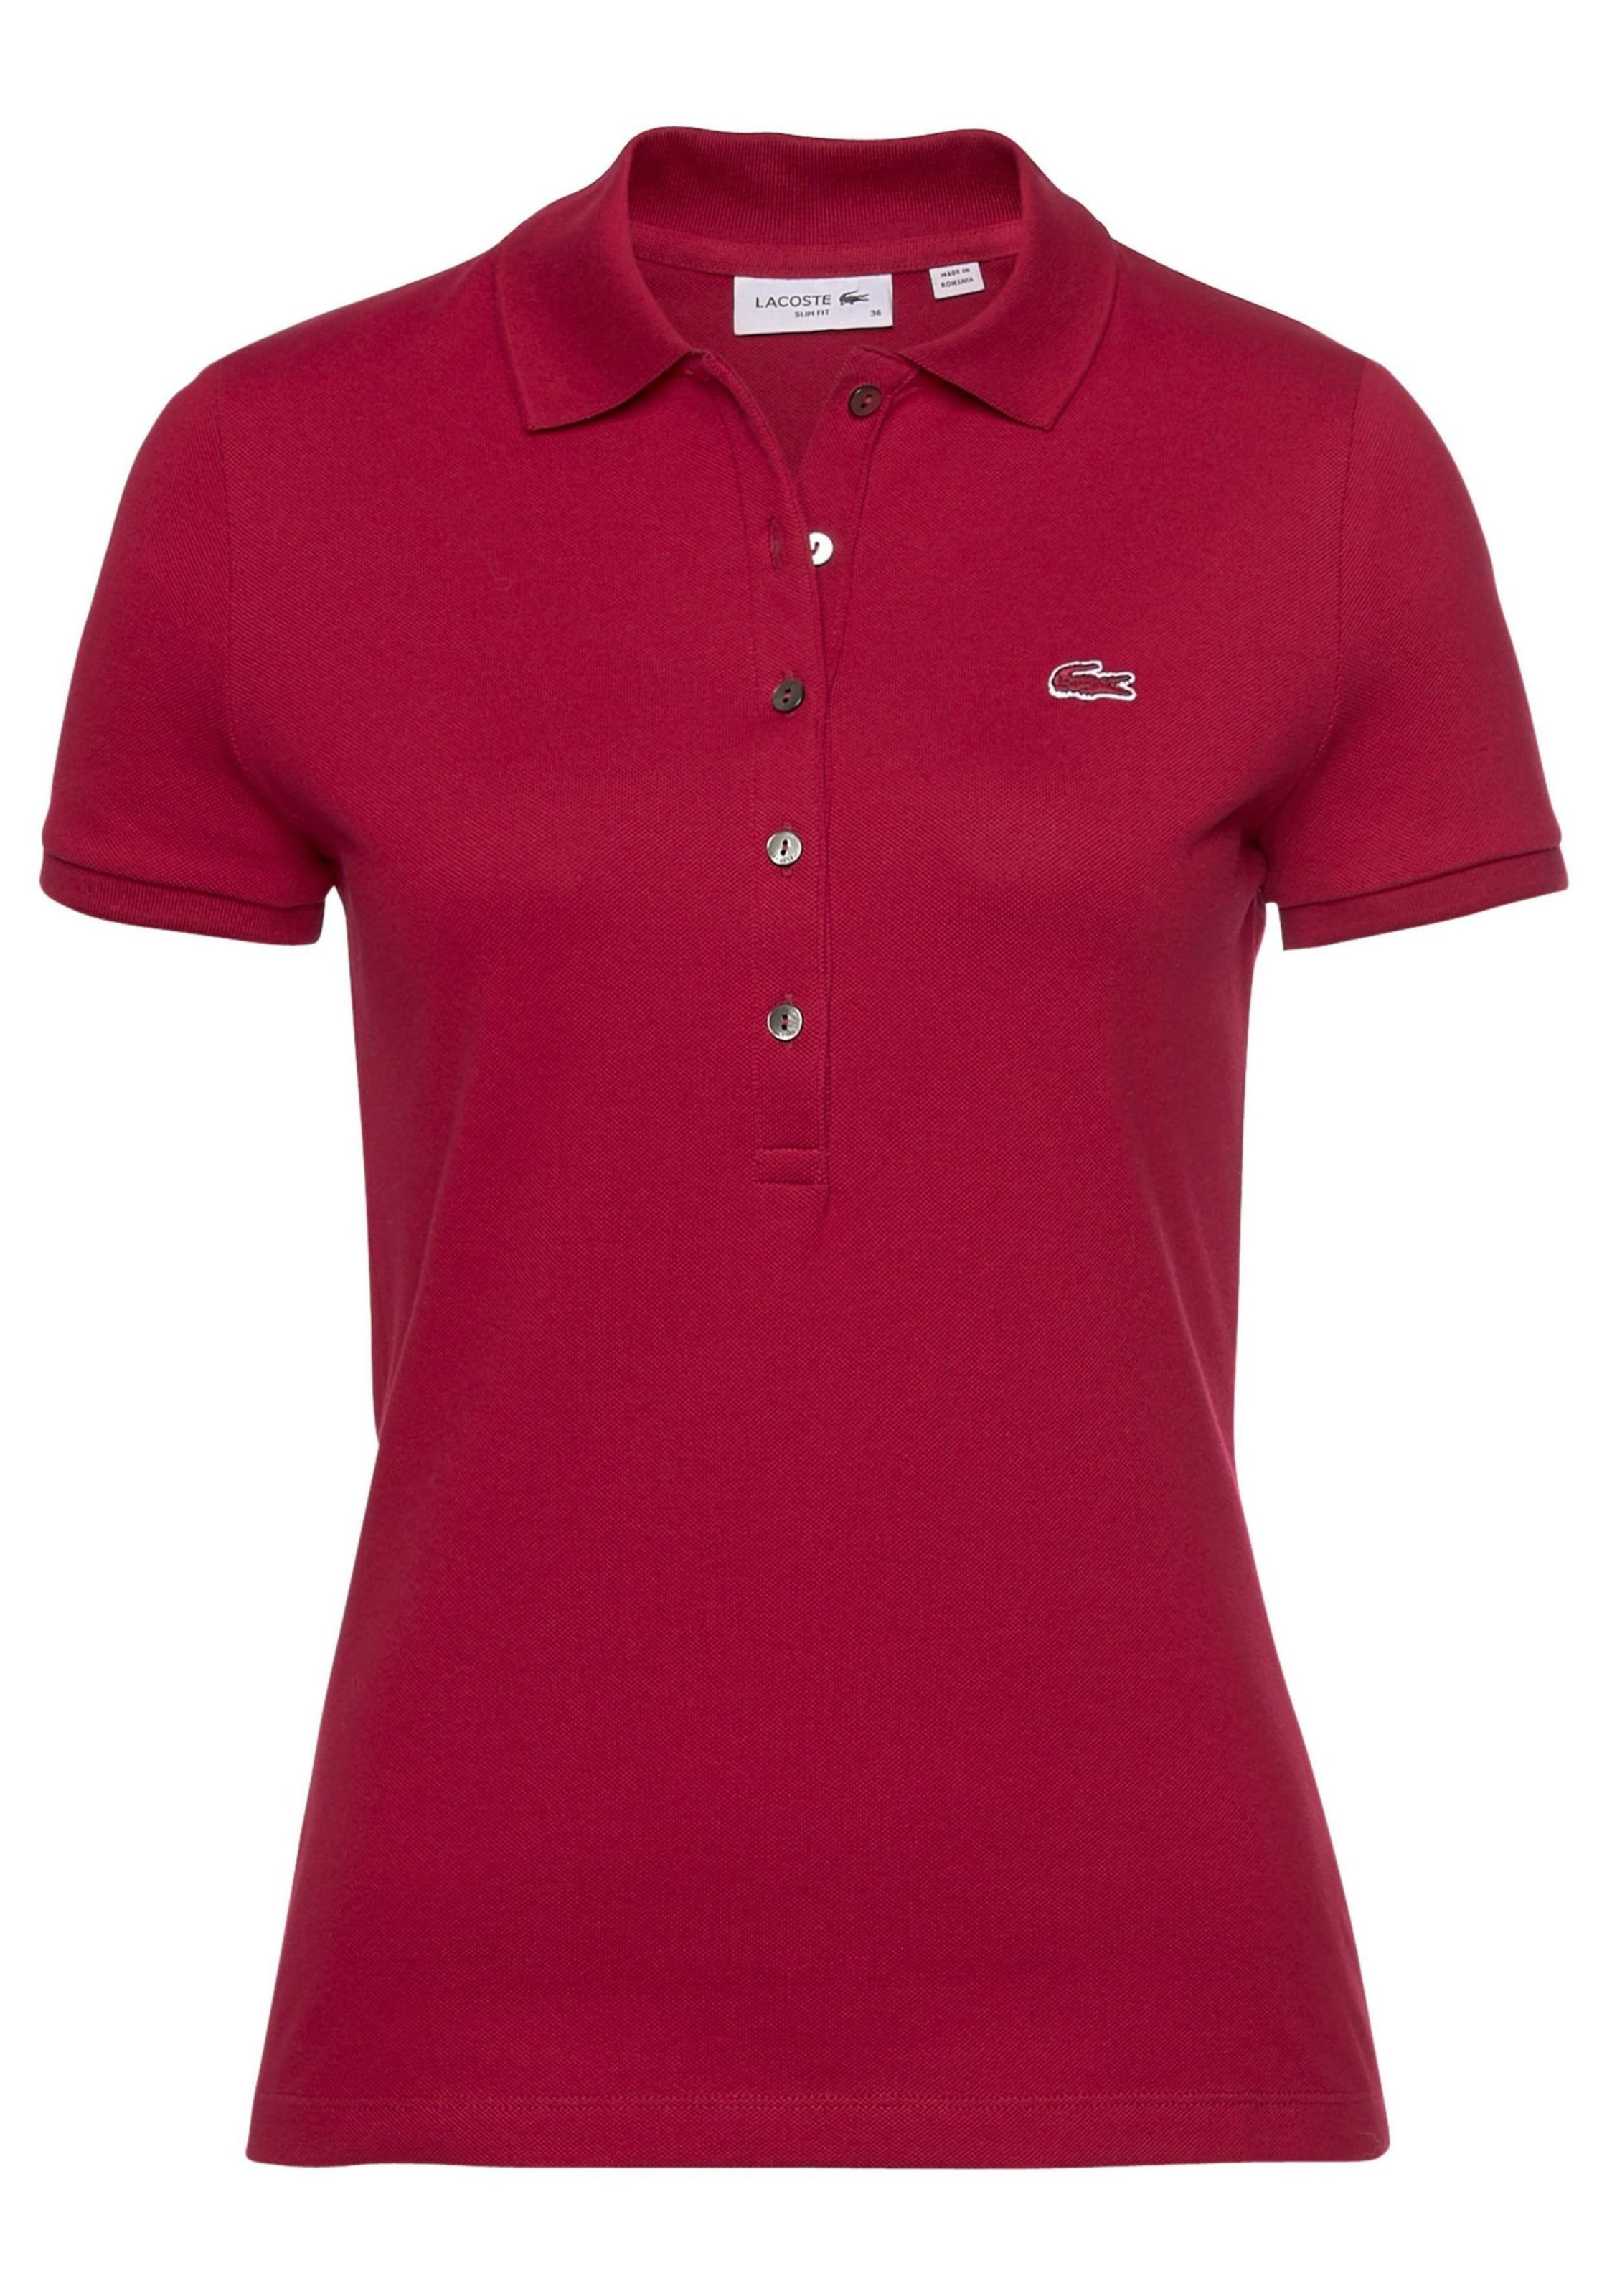 Poloshirt Lacoste Blutrot In In Poloshirt Lacoste Lacoste Blutrot In Poloshirt 8wnP0OXk